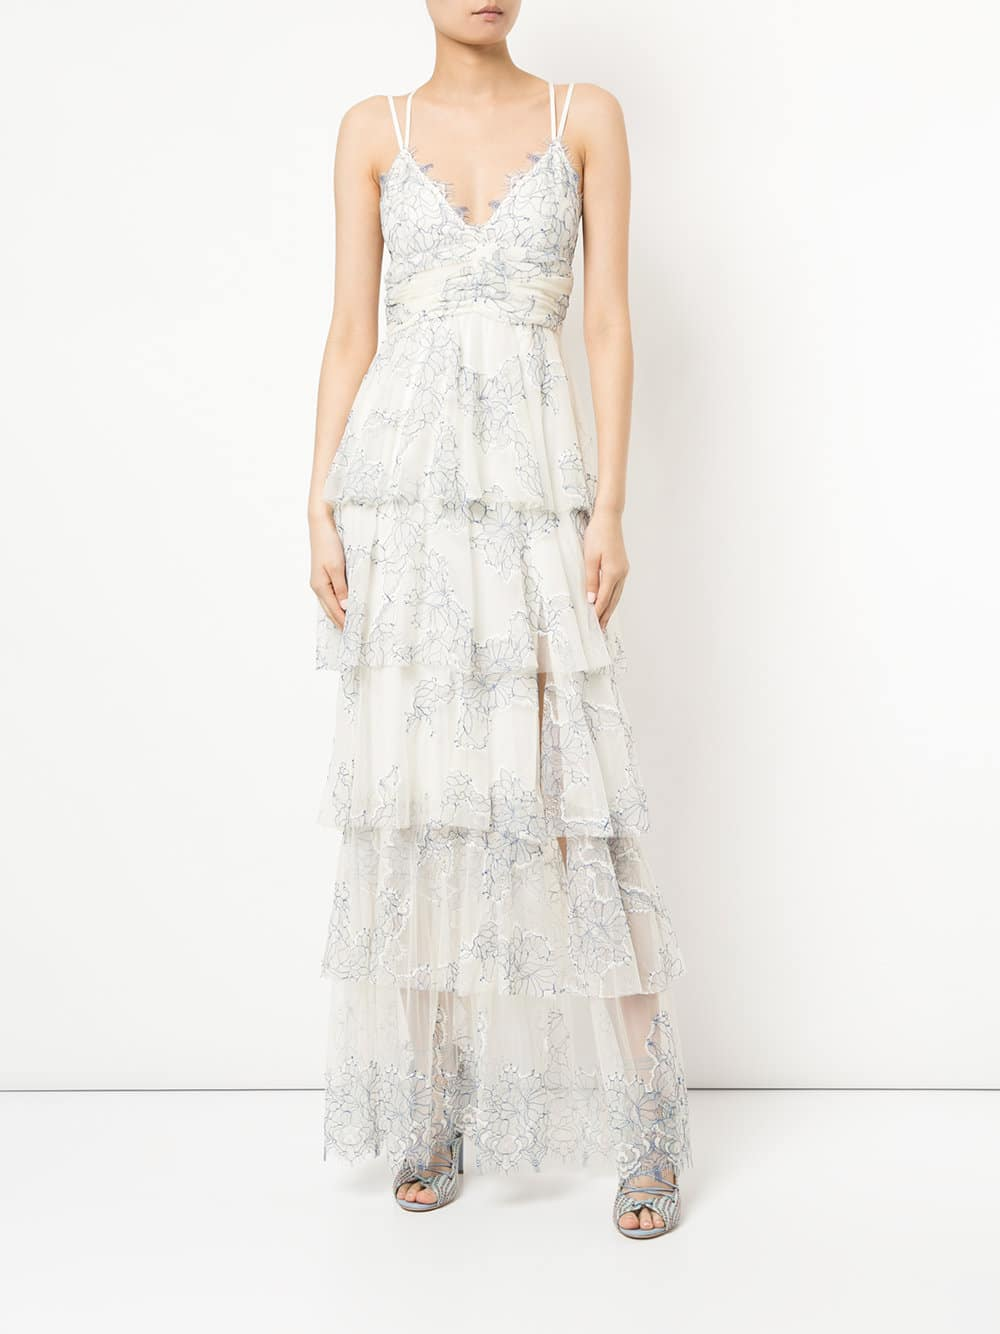 Alice Mccall Love Is Love White Gown We Select Dresses